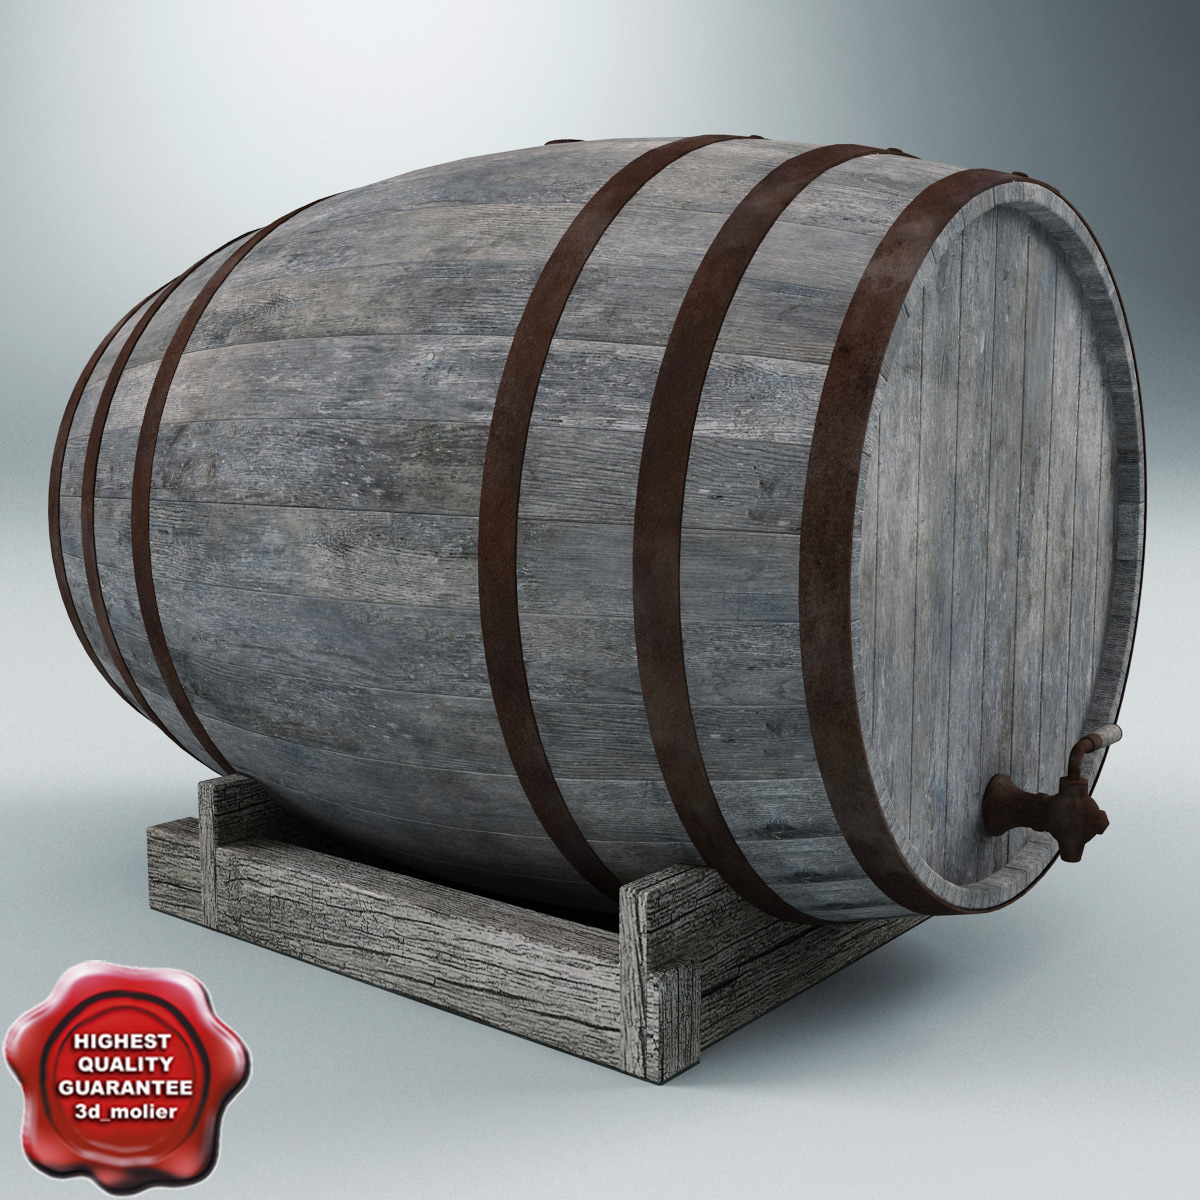 Old_Wine_Barrel_00.jpg